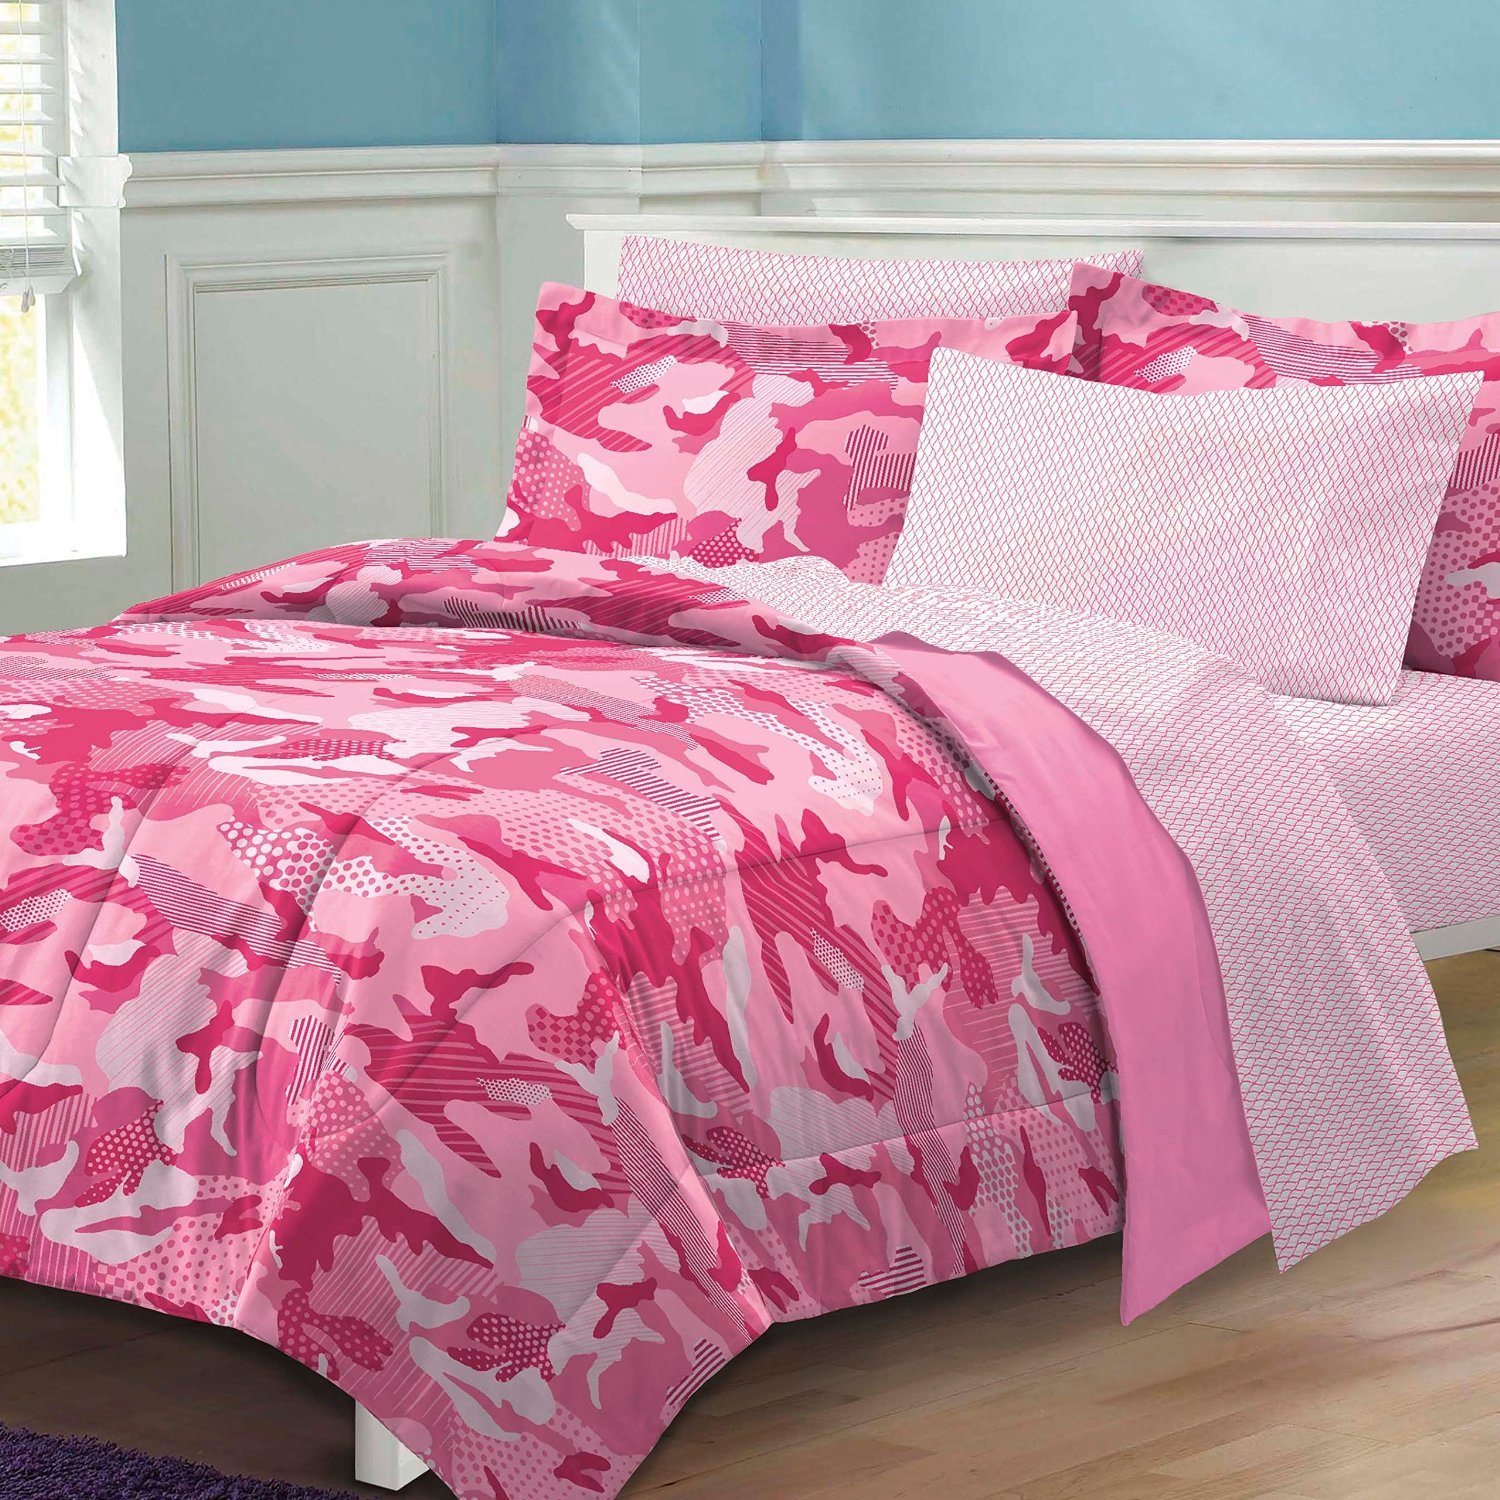 size bedding camo ipohiepf oiqteh of sets bed full twin